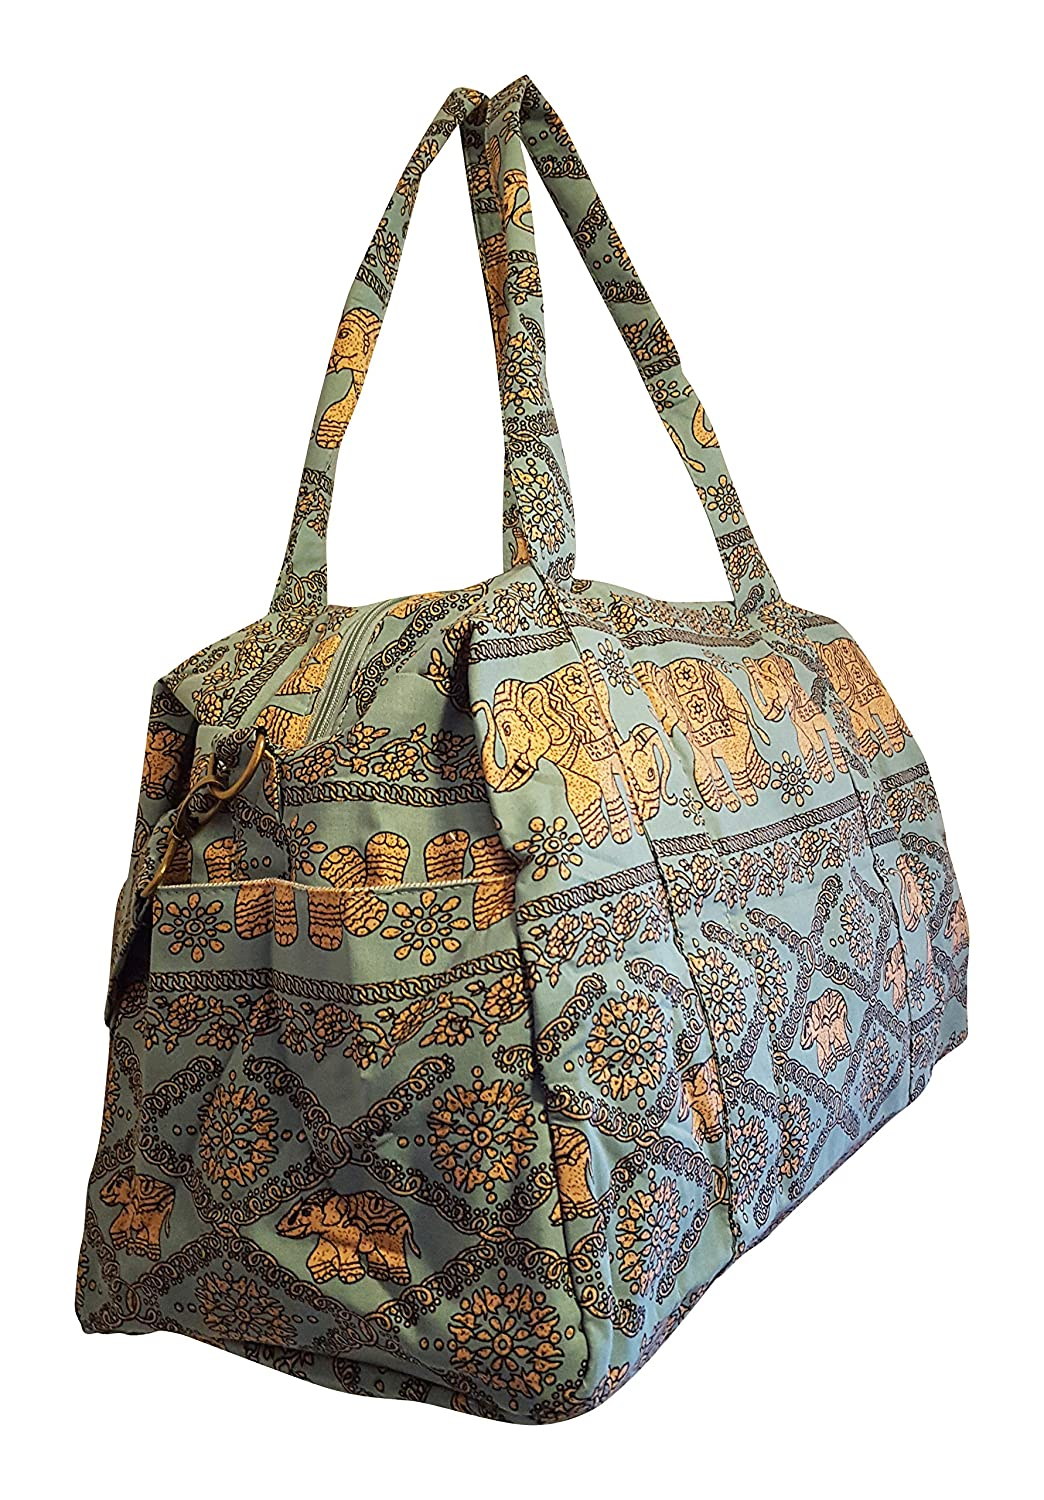 Overnighter Large Travel Duffle Duffel Bag Monogram Personalization Available Sage Green with Gold Elephants Sona G Designs